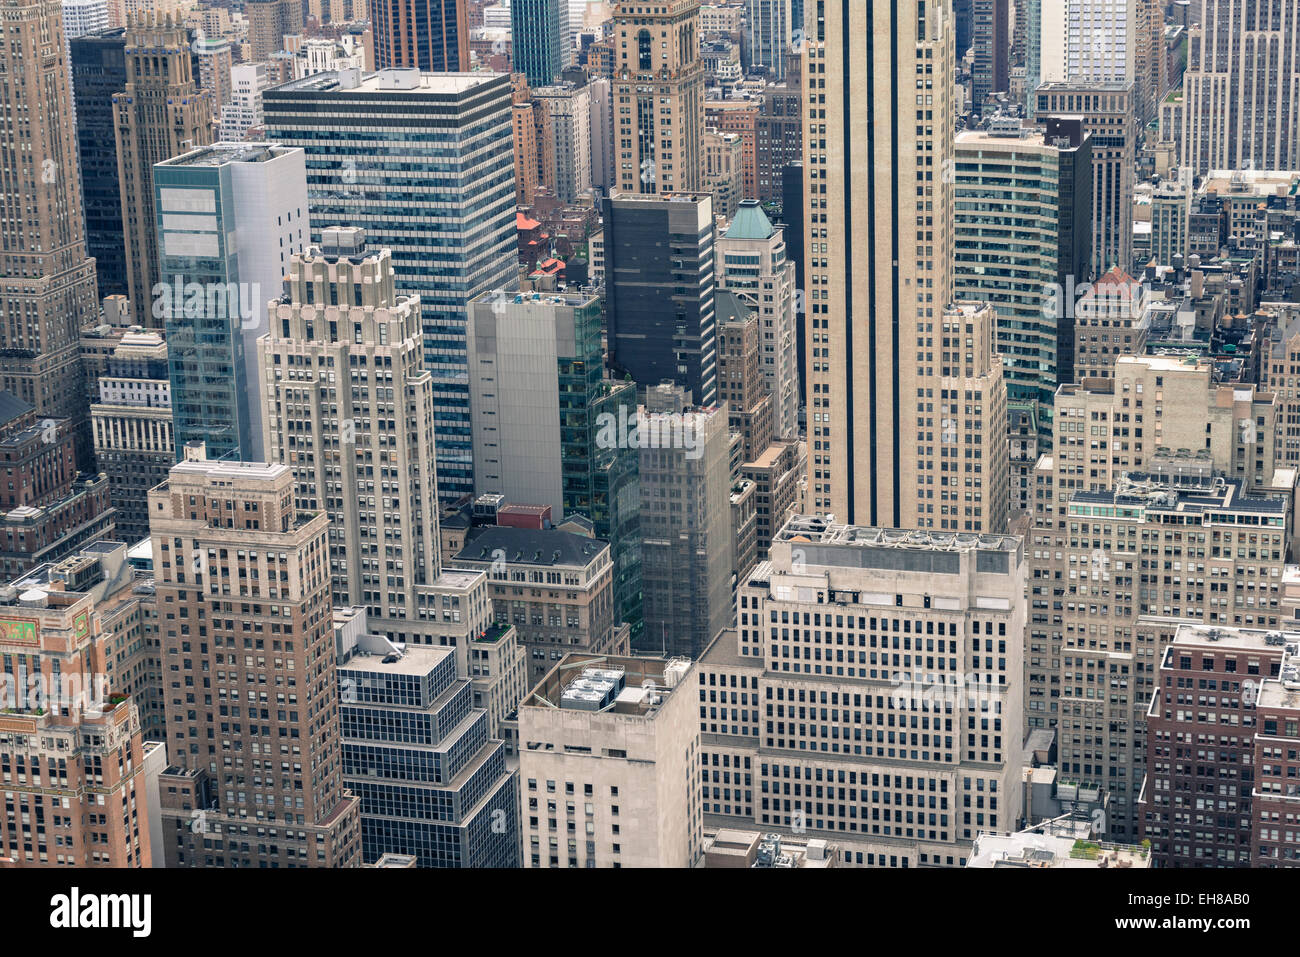 Manhattan skyscrapers, New York City, United States of America, North America - Stock Image